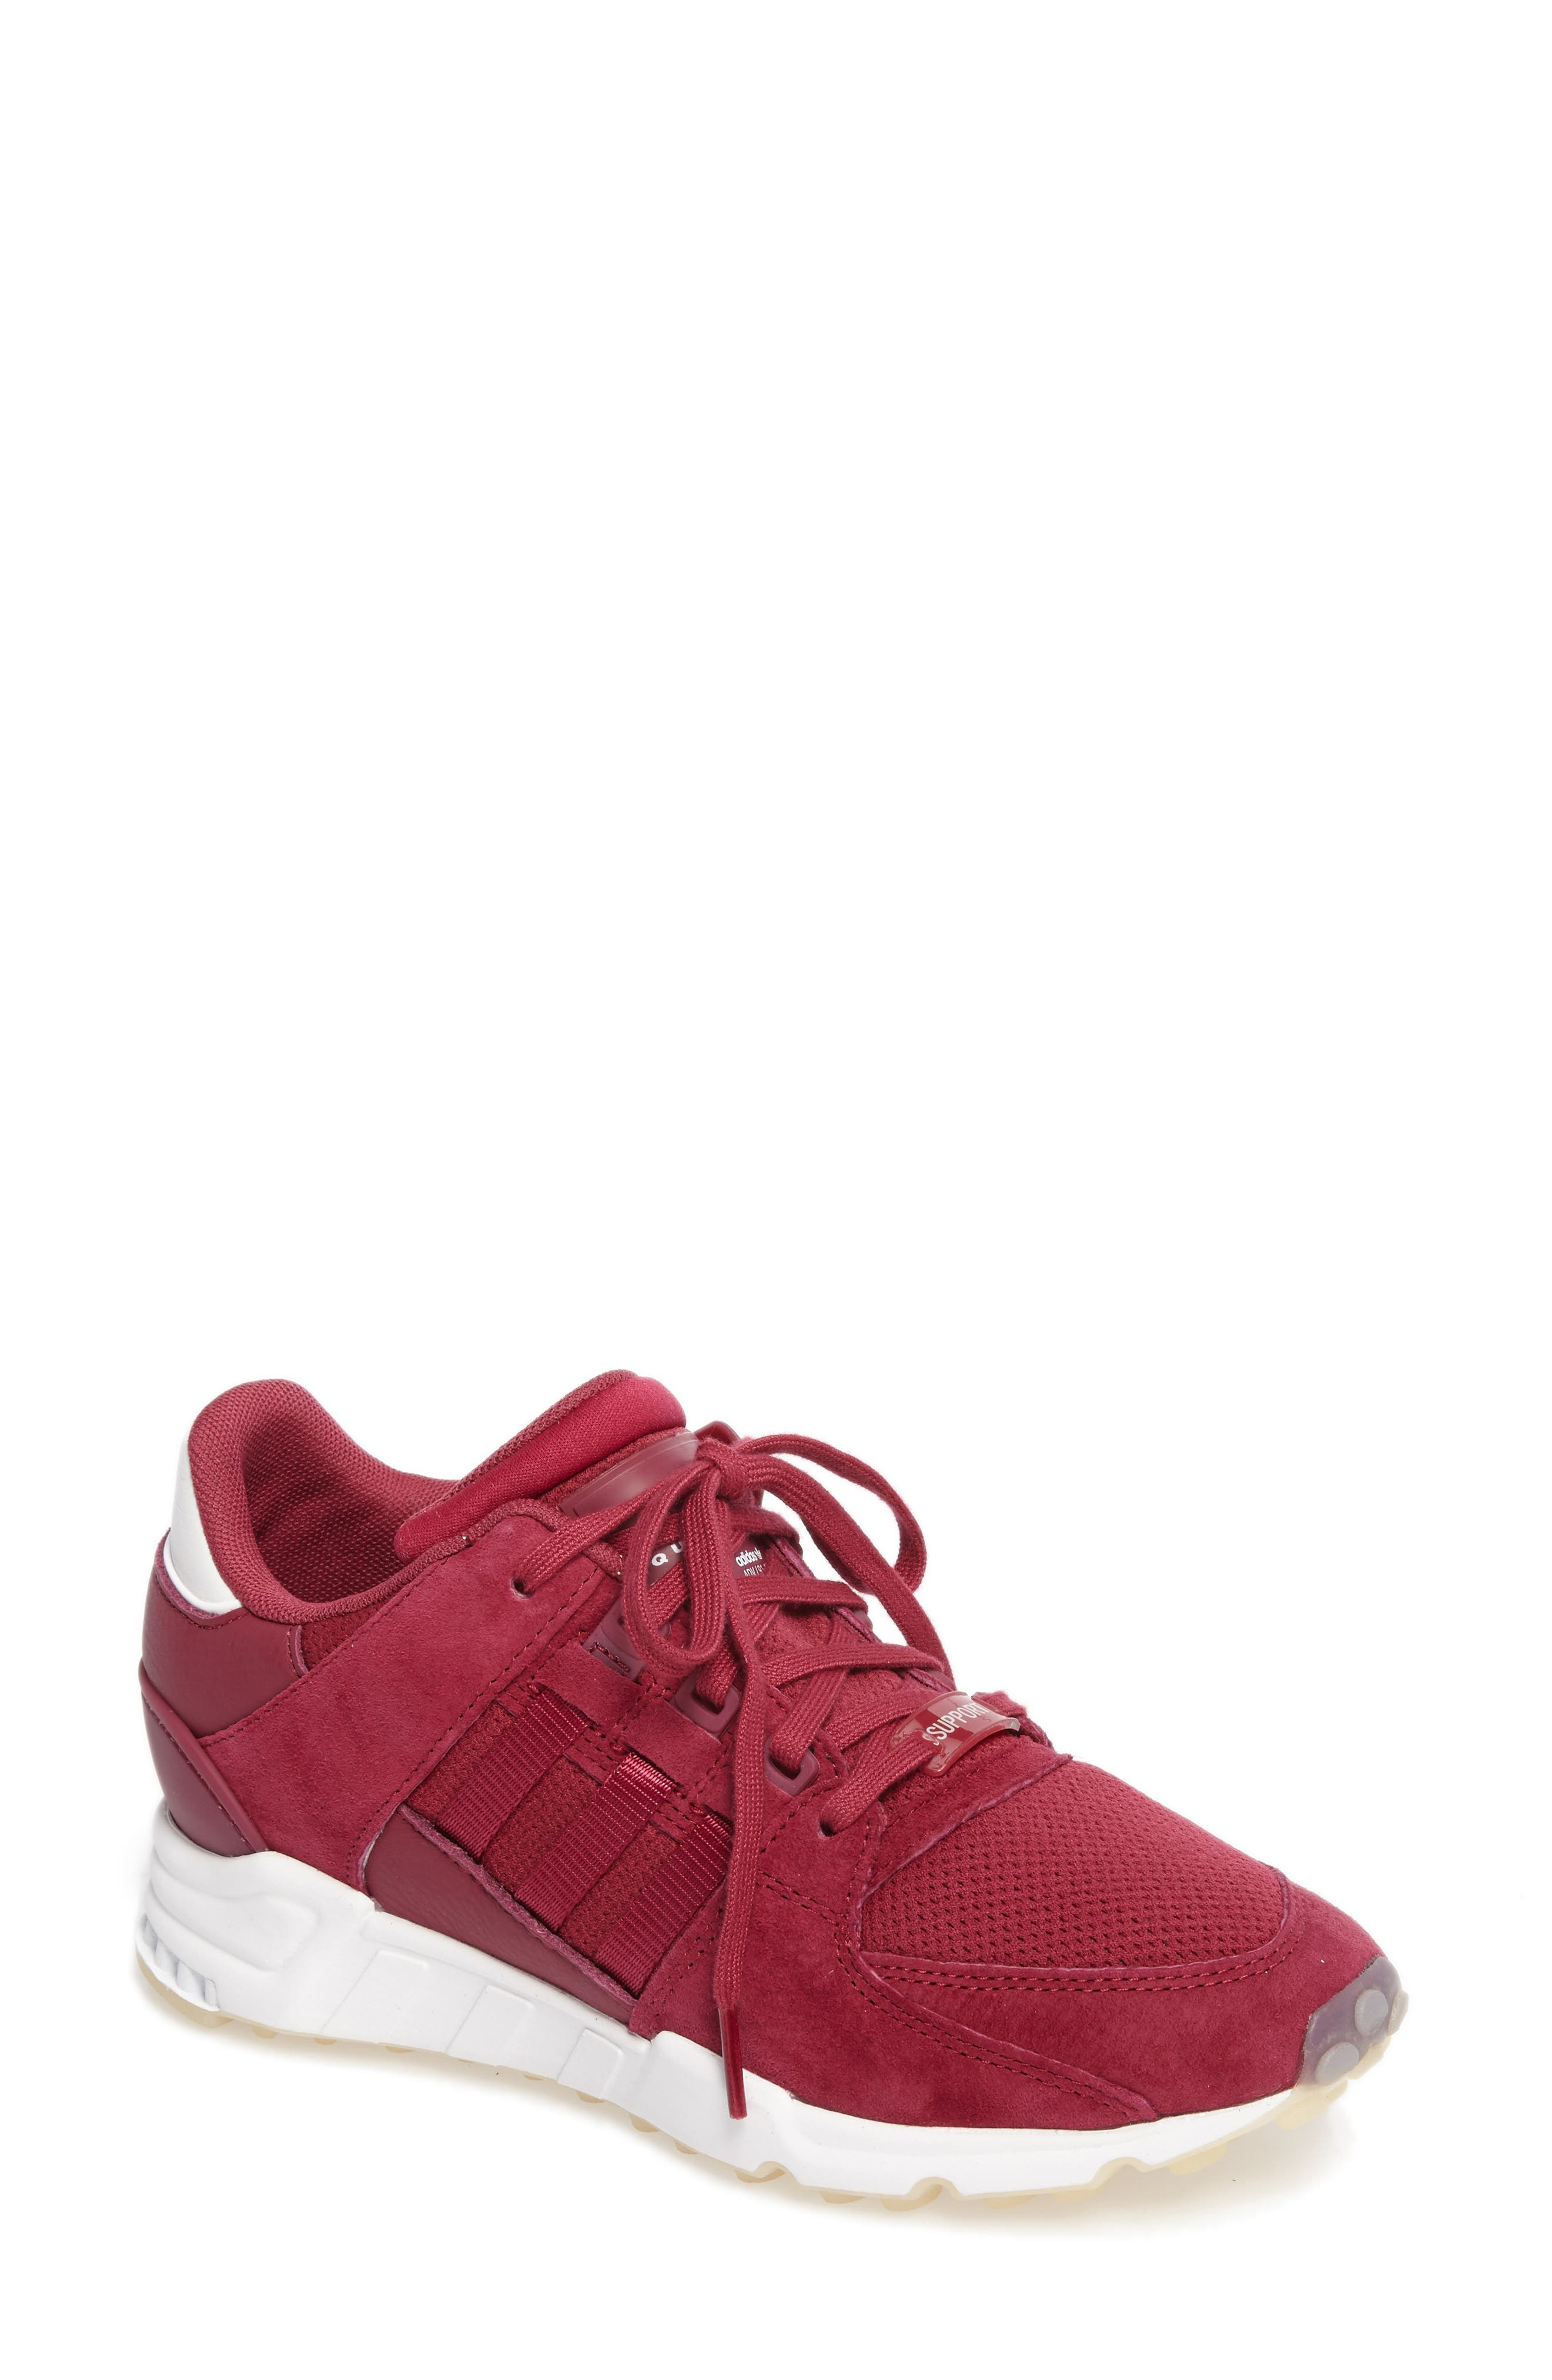 Alternate Image 1 Selected - adidas EQT Support RF Sneaker (Women)